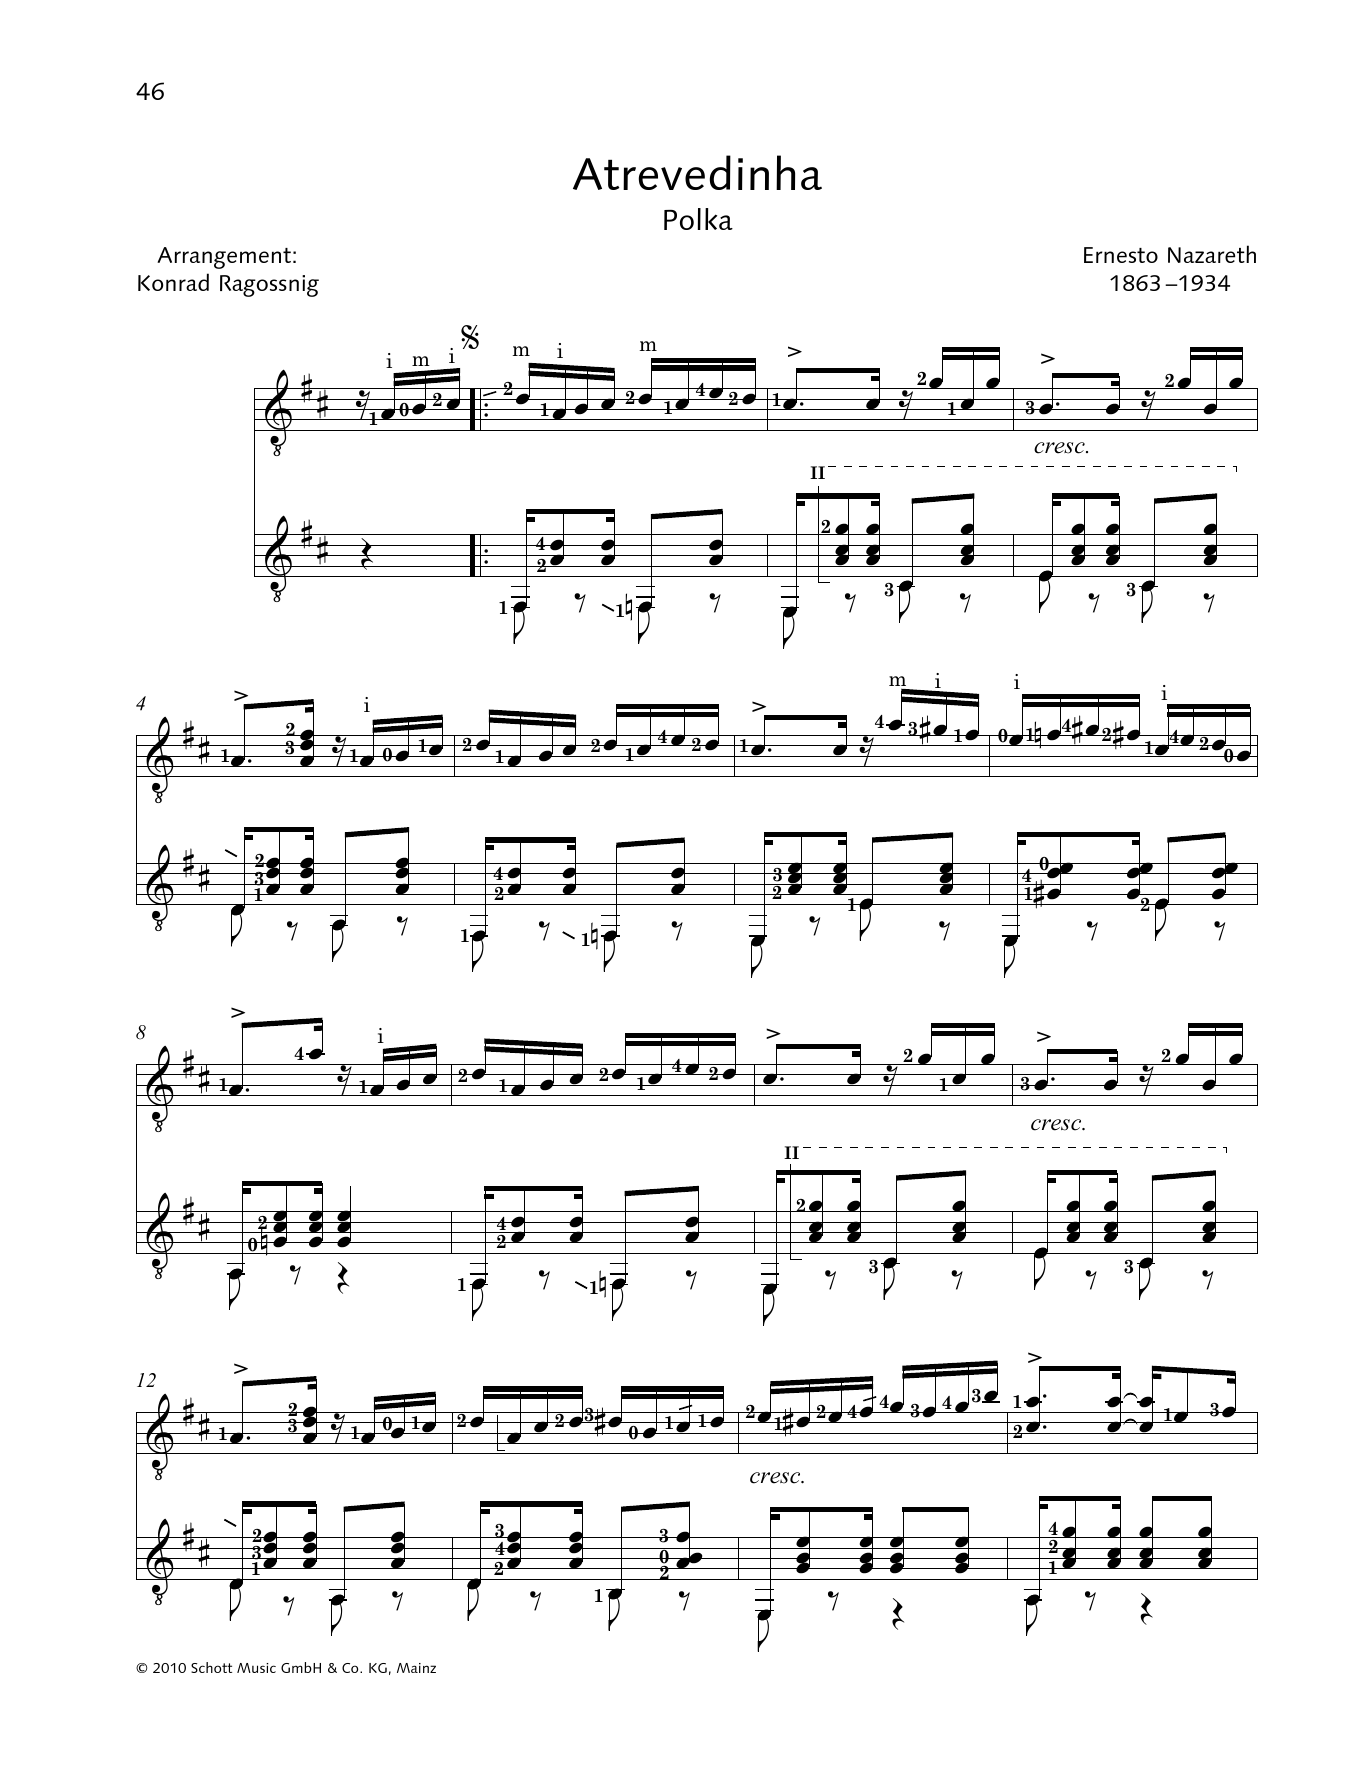 Atrevedinha - Full Score Sheet Music